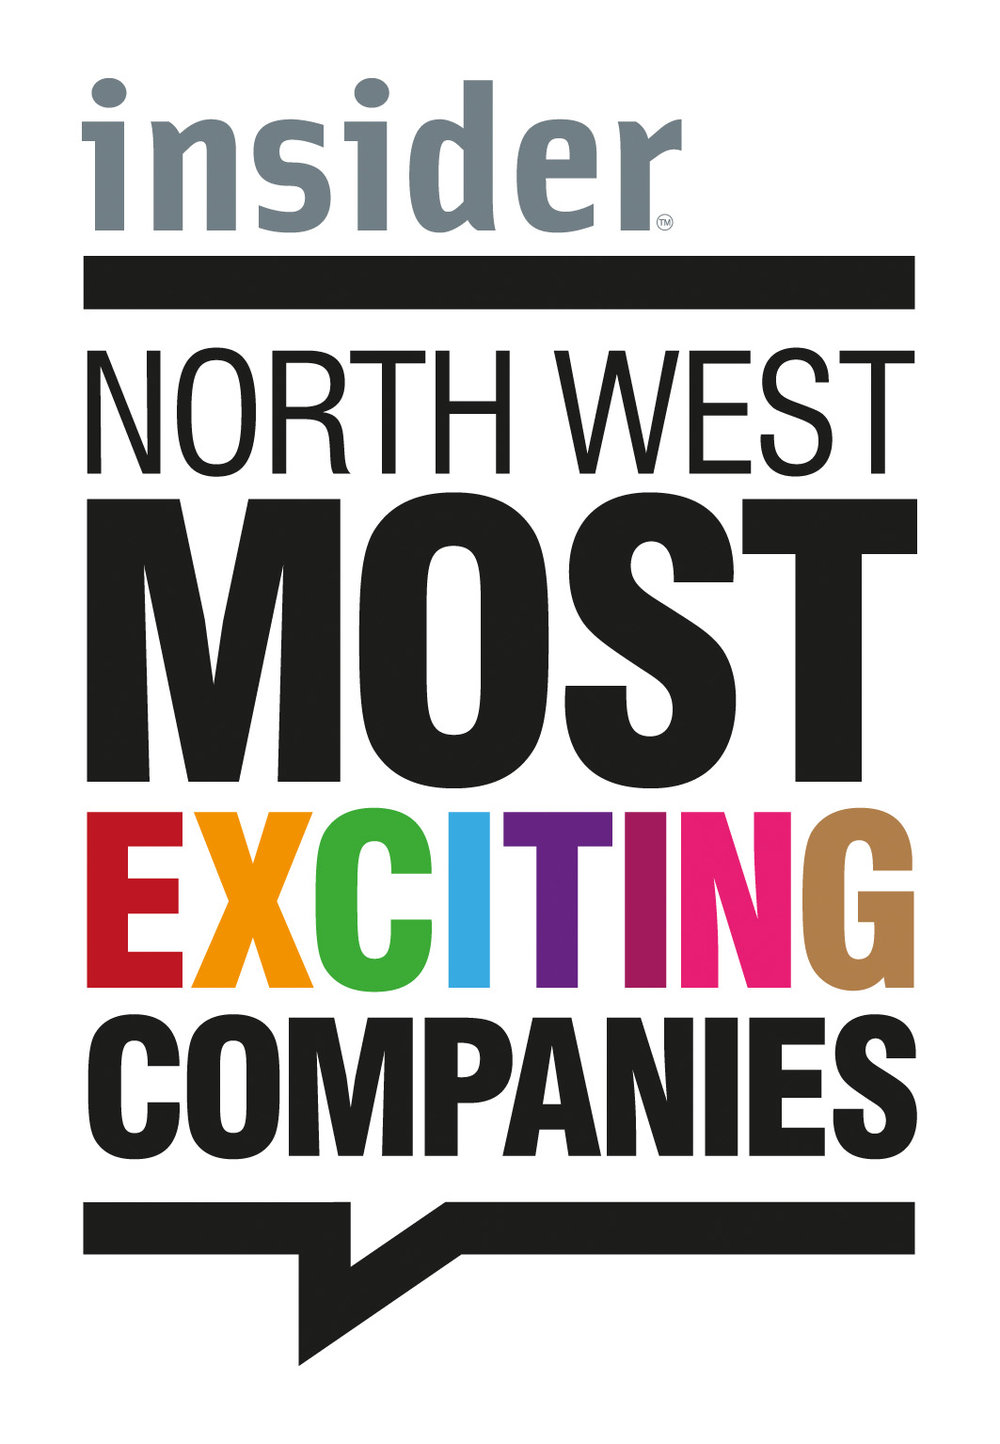 VYPR Named In Top 50 Most Exciting Companies In The North West